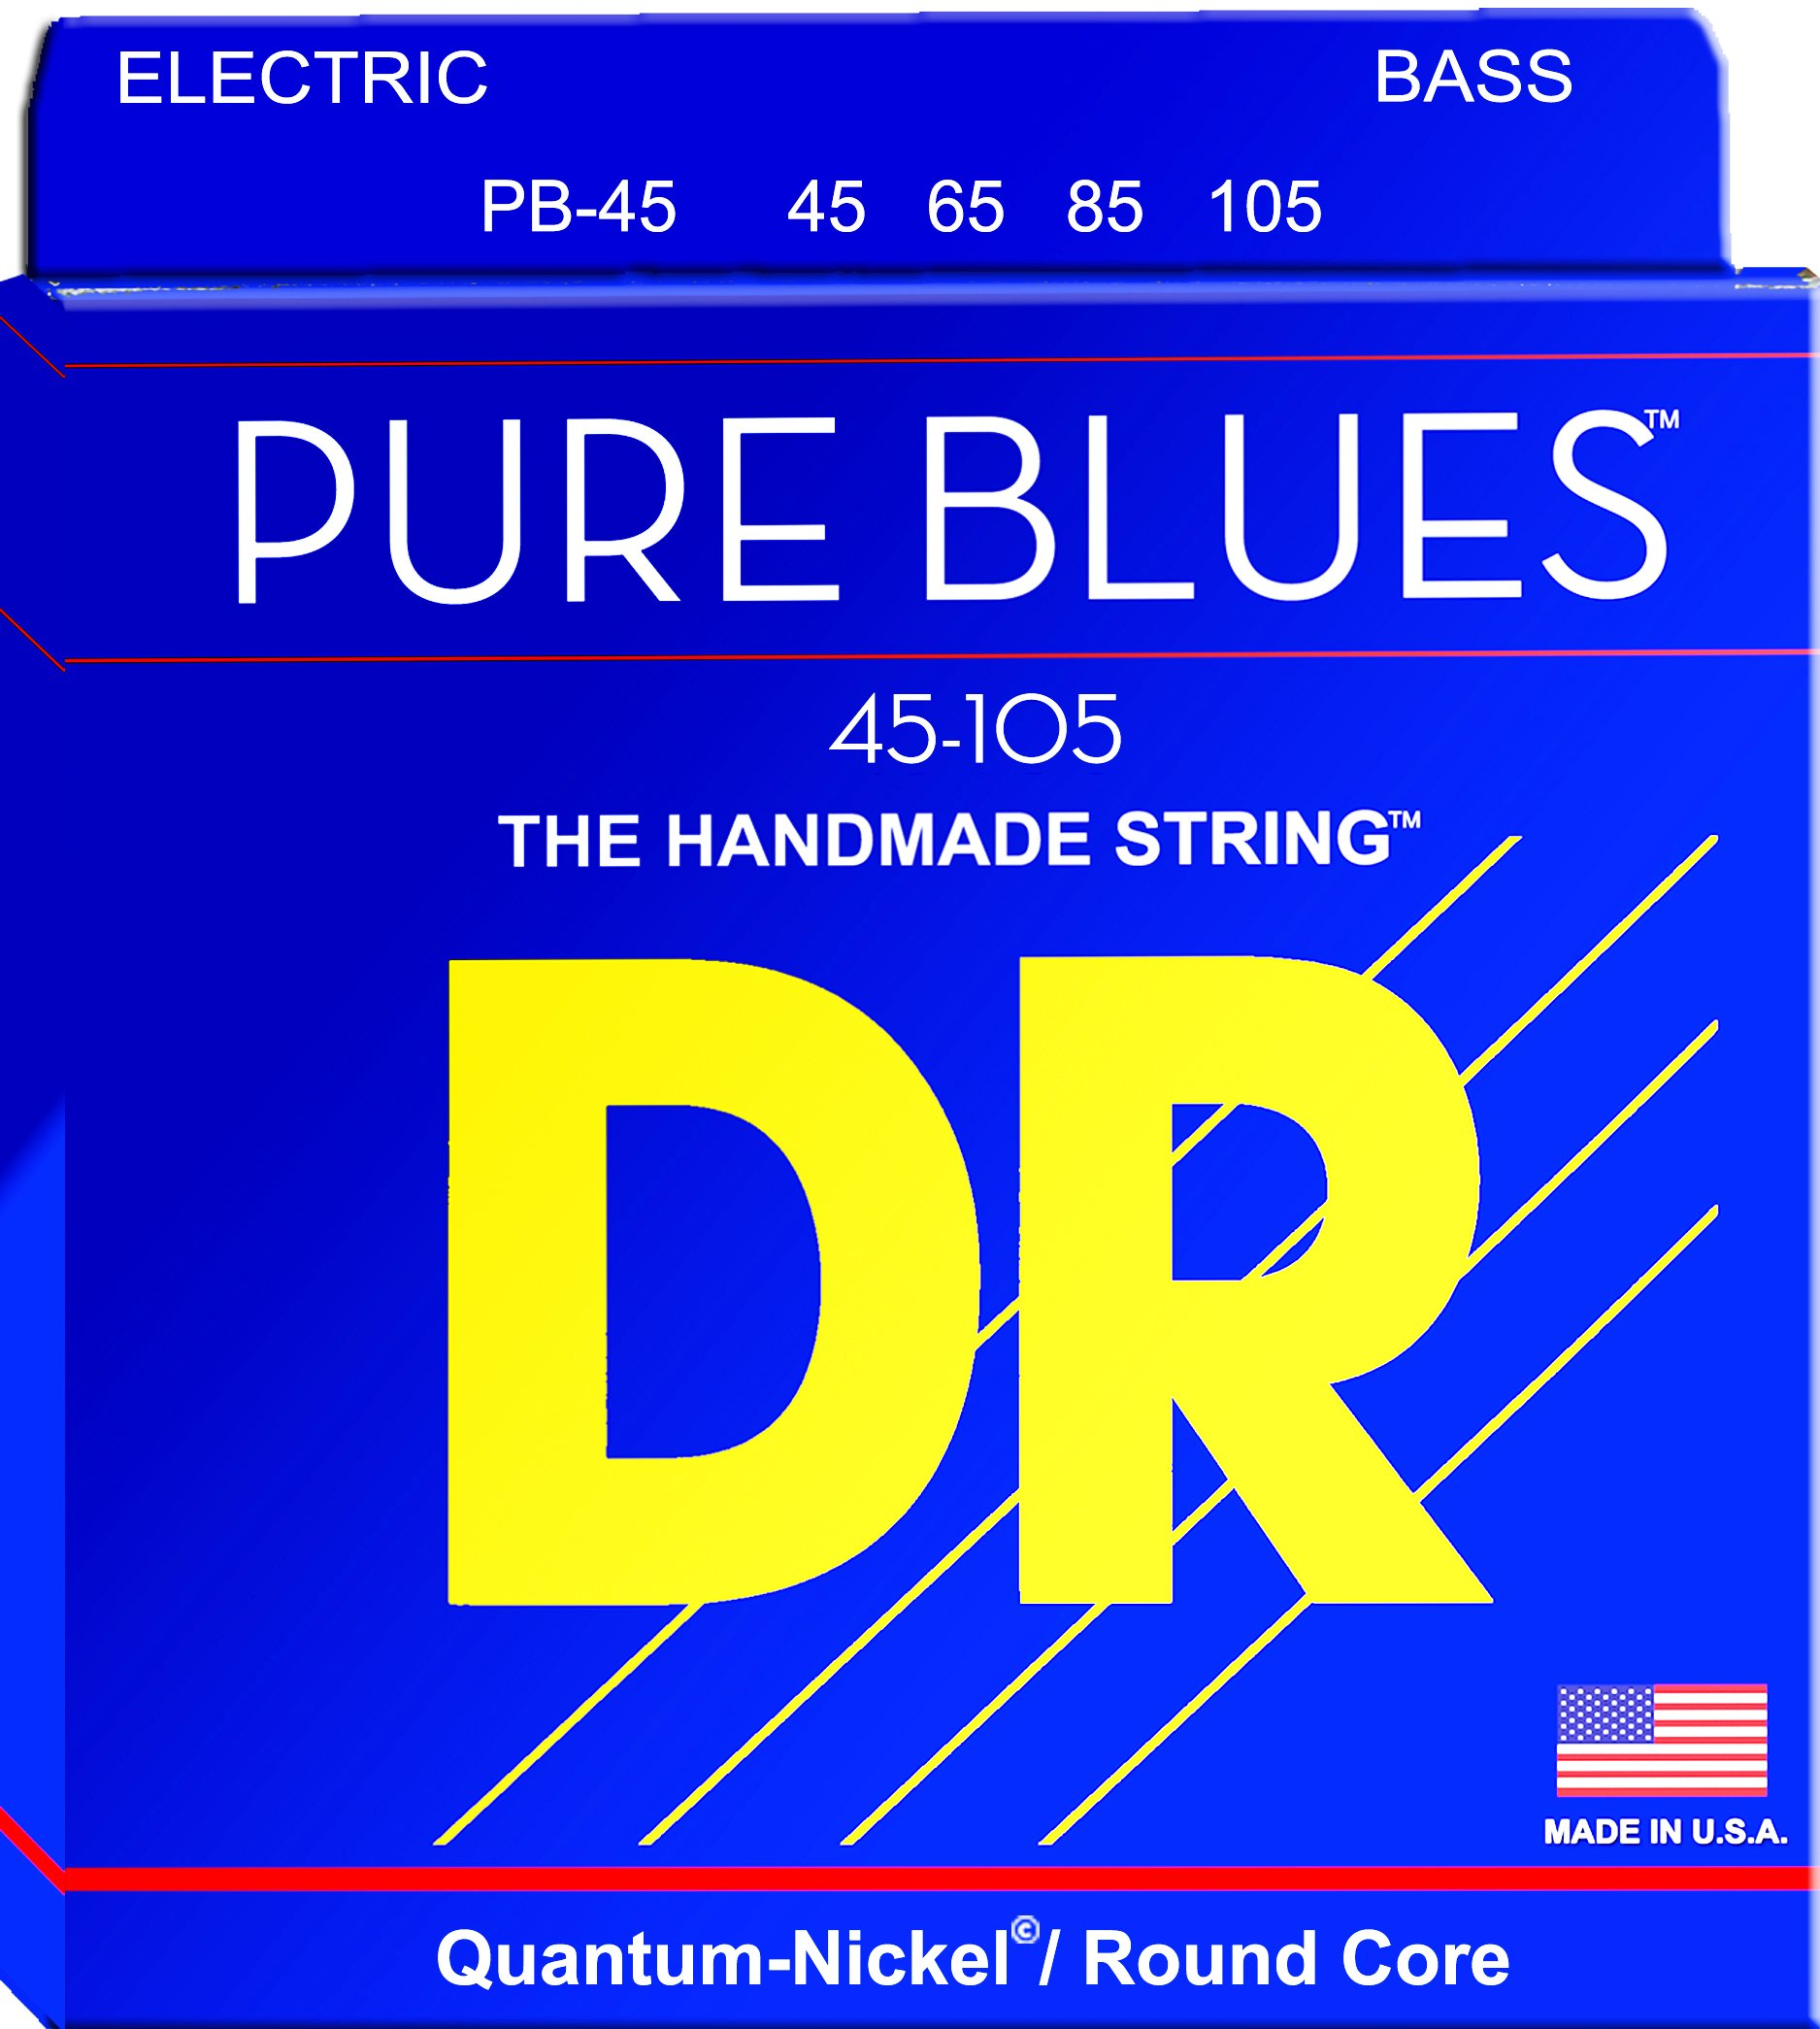 DR Strings PURE BLUES Bass Guitar Strings (PB-45) by DR Strings